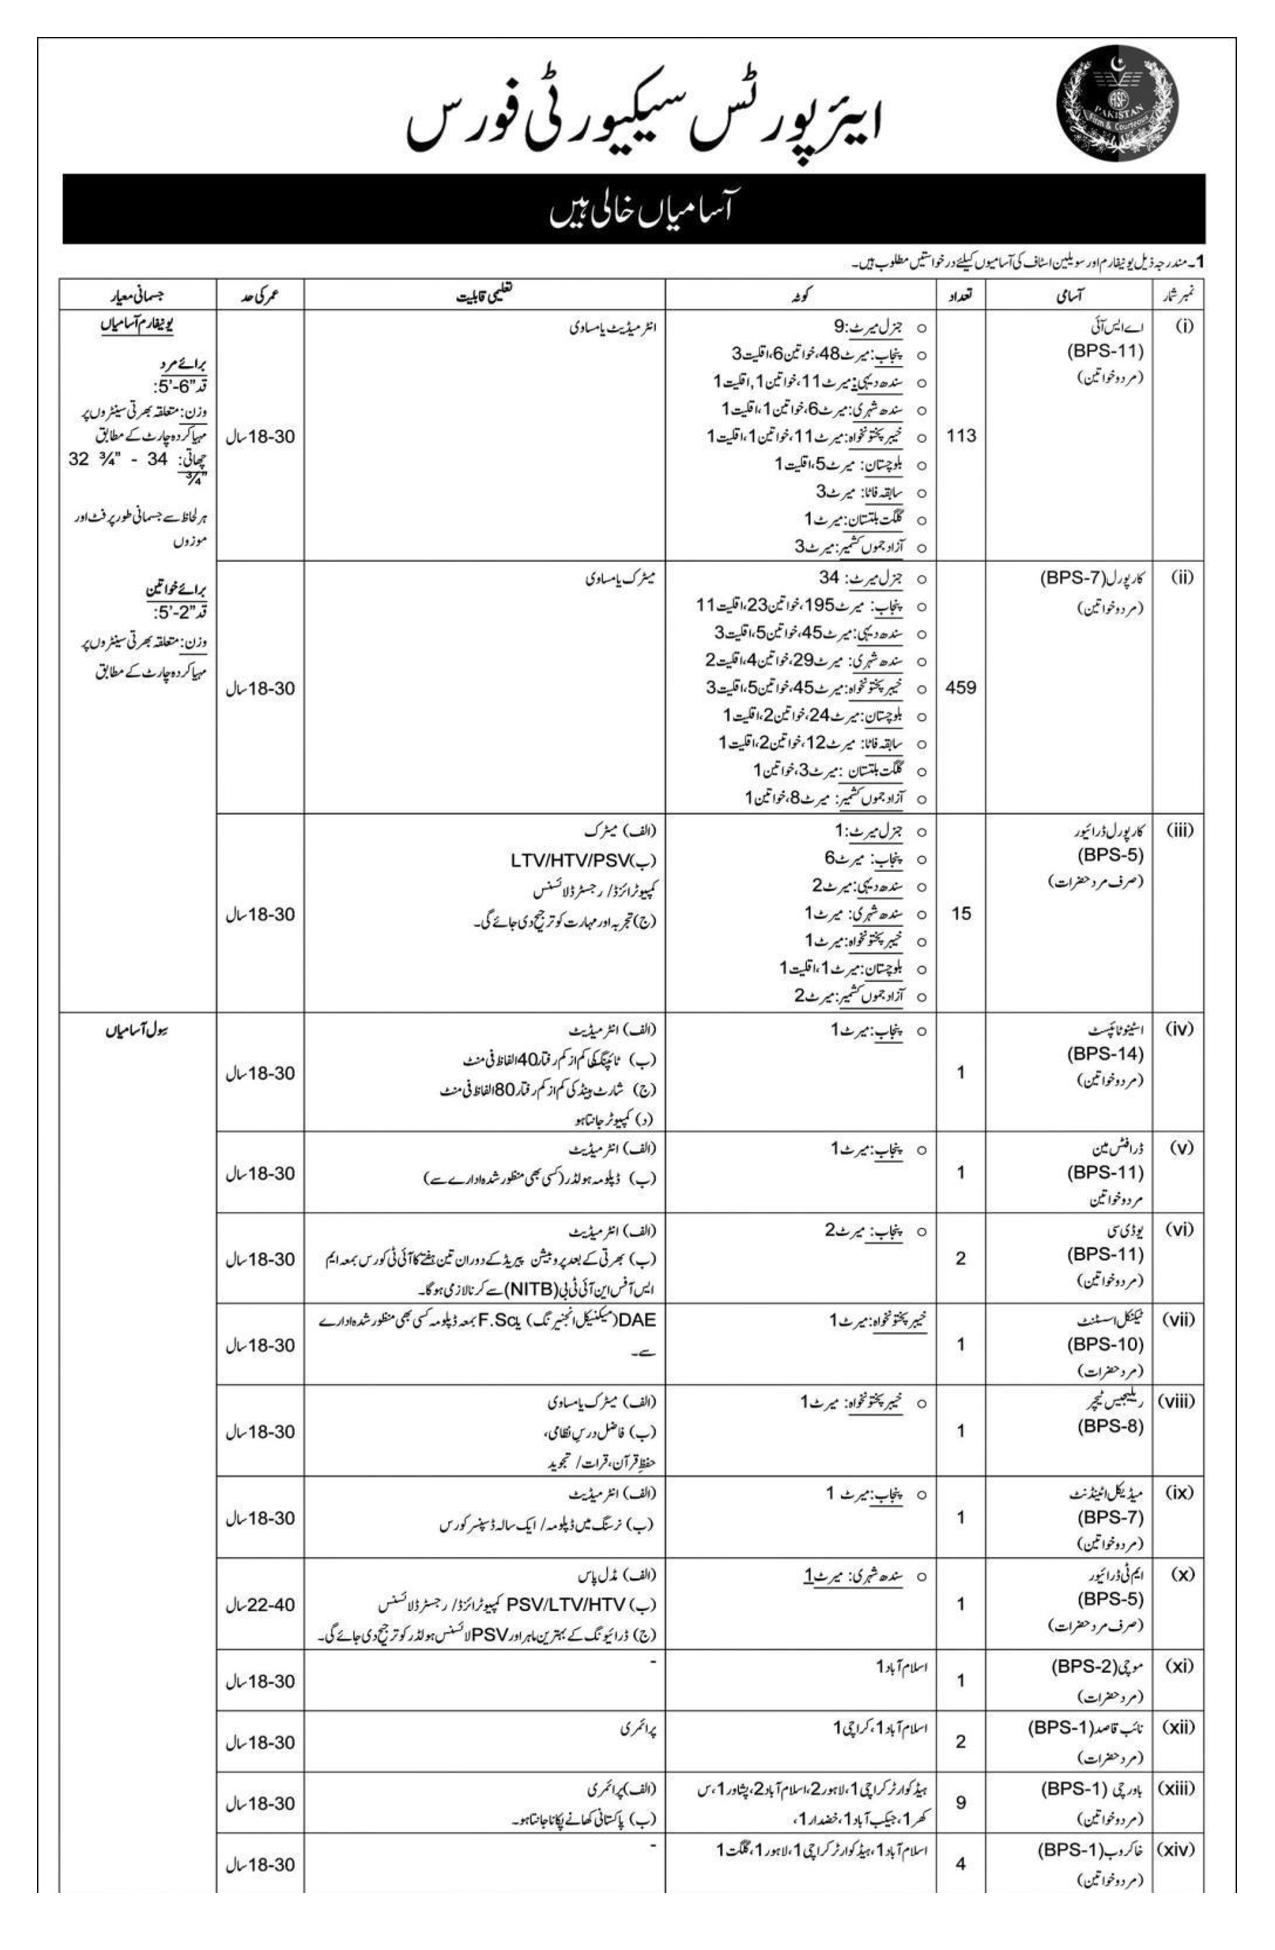 Airport Security Force ASF Jobs Test Result